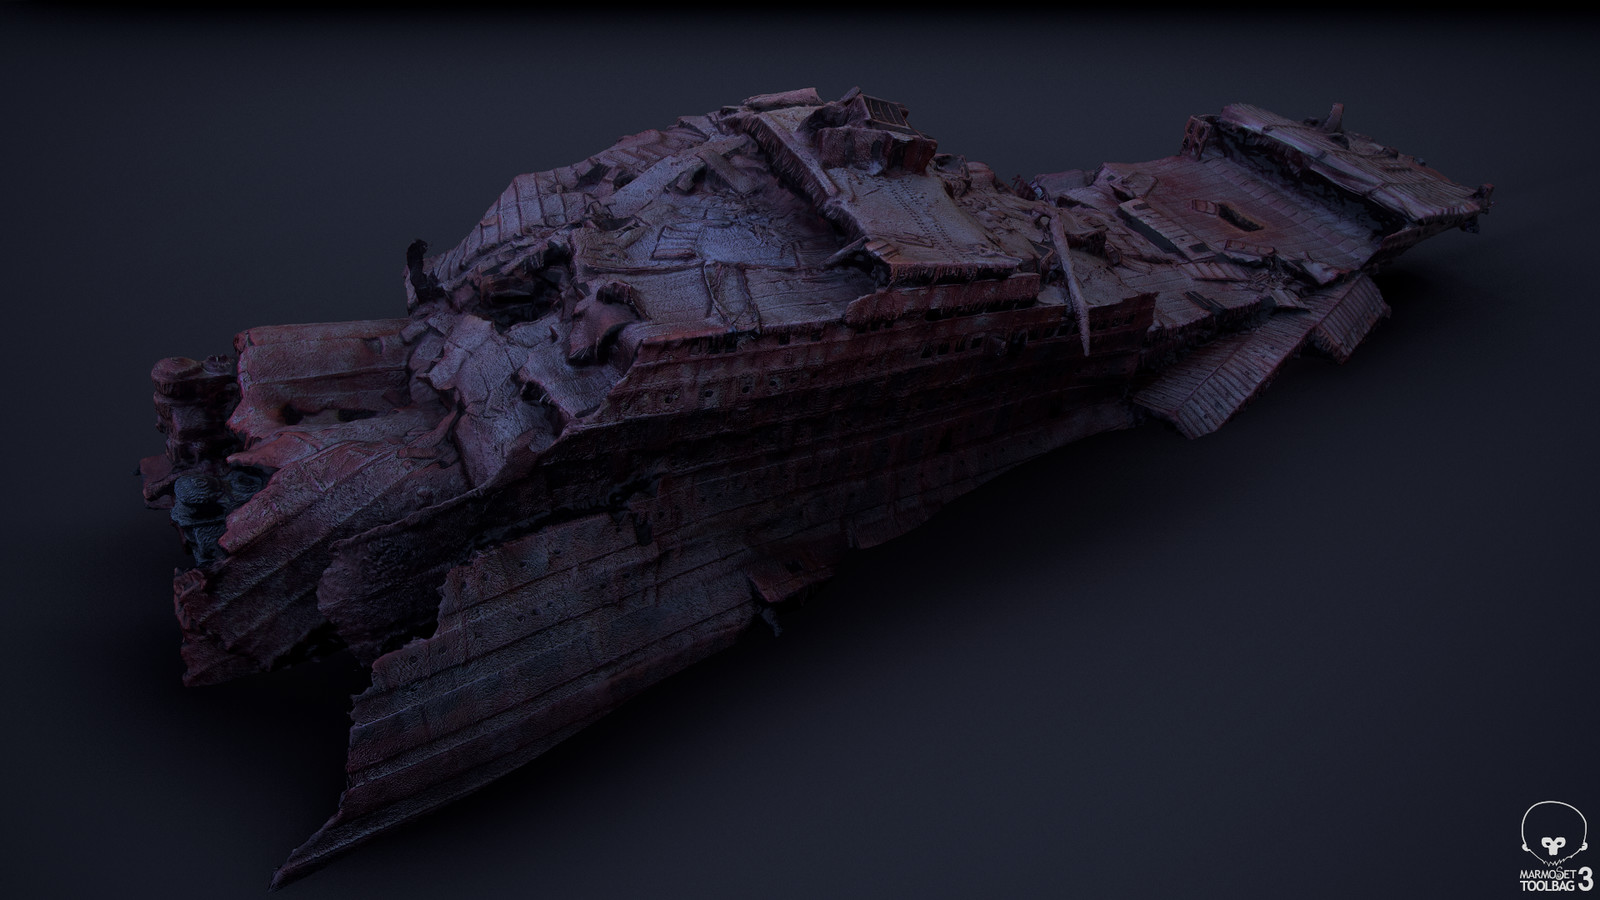 Agisoft Photoscan output geometry, viewed in Marmoset Toolbag 3 (02)